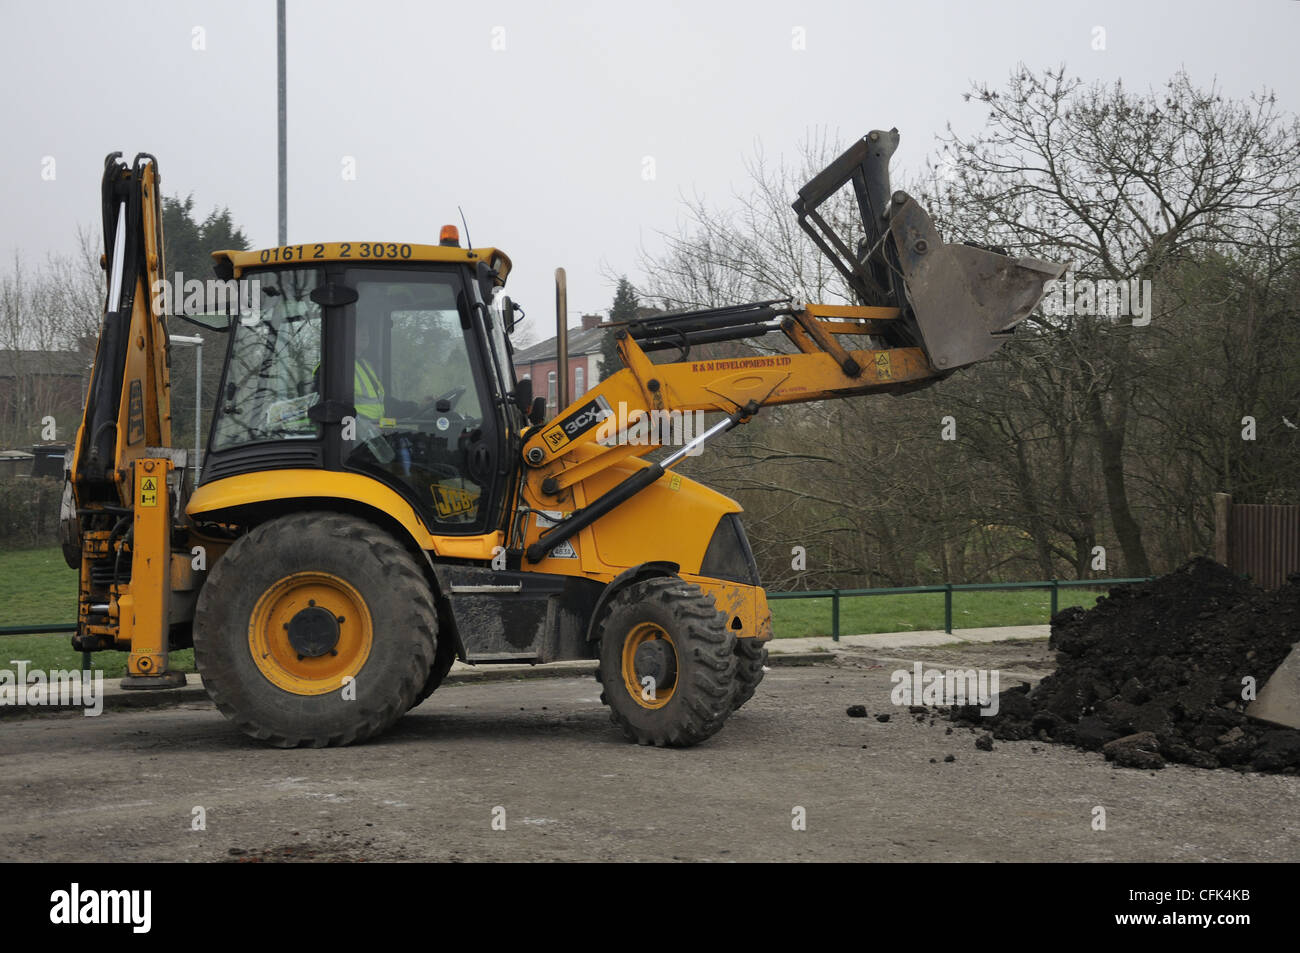 JCB with full bucket load - Stock Image